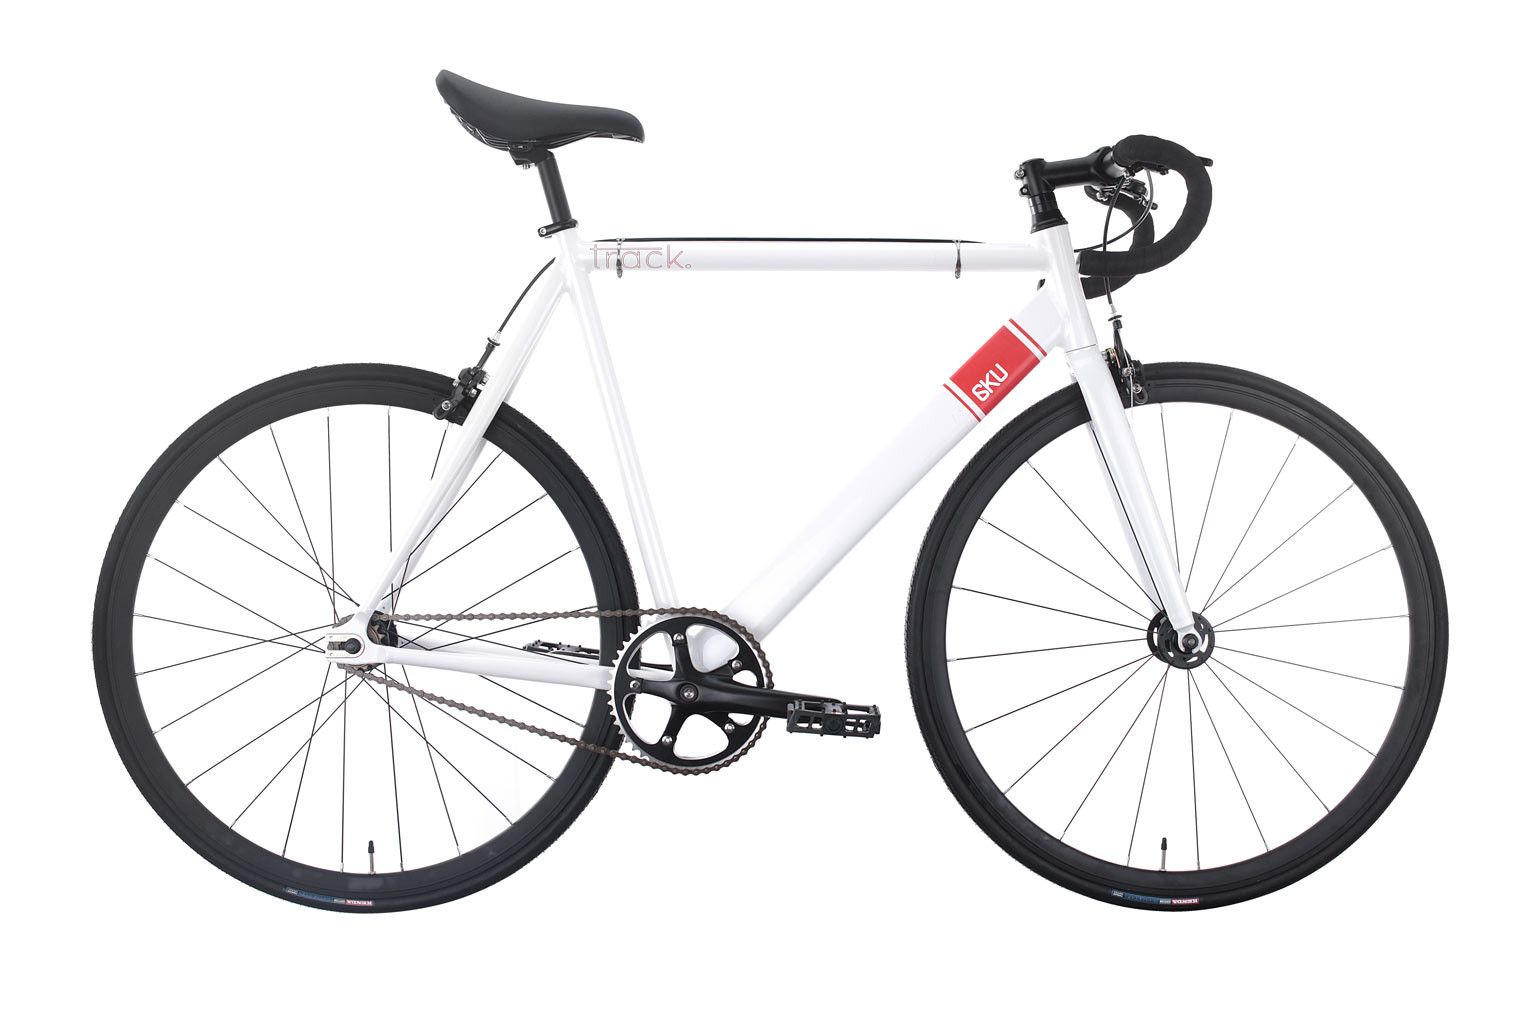 6KU Track bike!! $5 off with code PINTEREST | 6KU Bikes | Pinterest